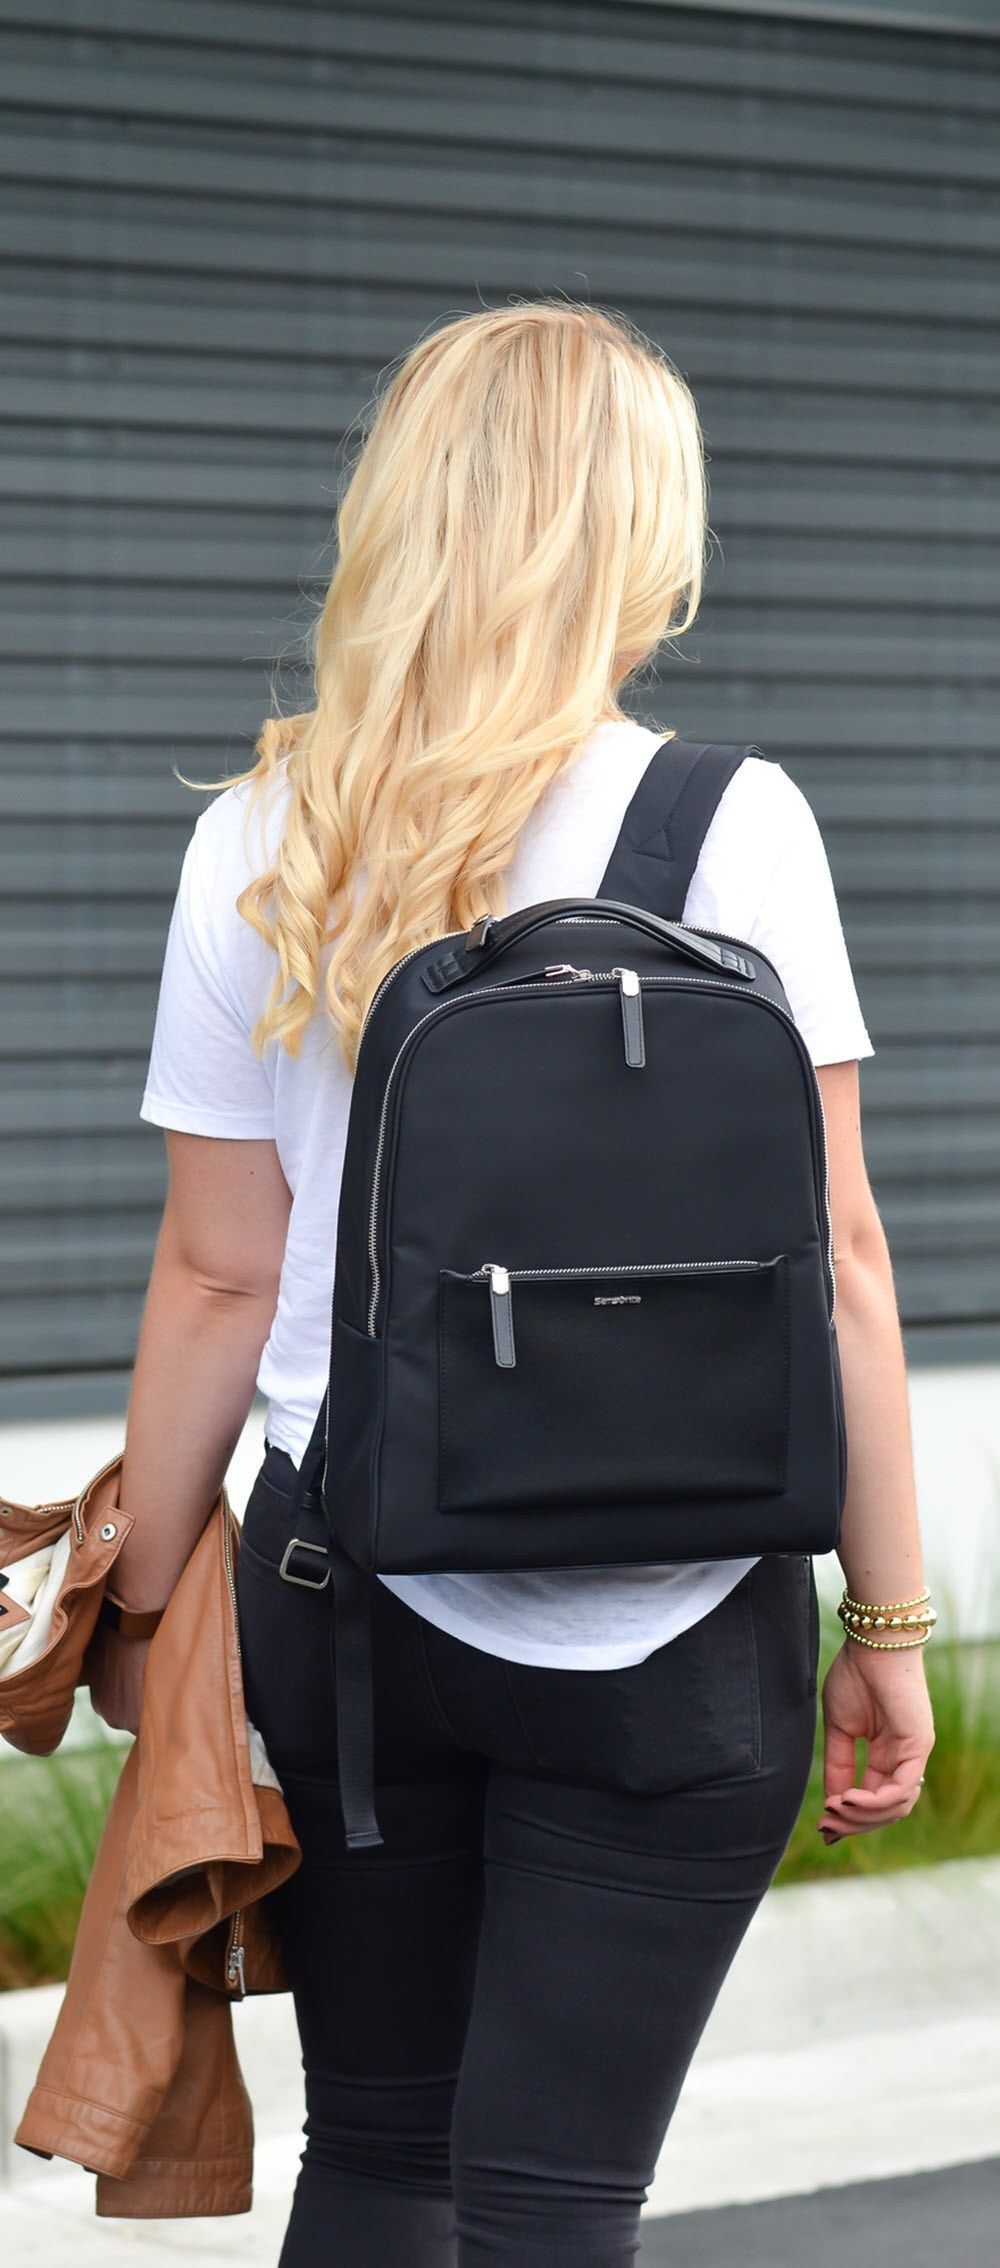 0d088b511a46 Best Travel Work Bags for Stylish Women. Chic Work Laptop Backpack -  Samsonite Zalia Backpack Review